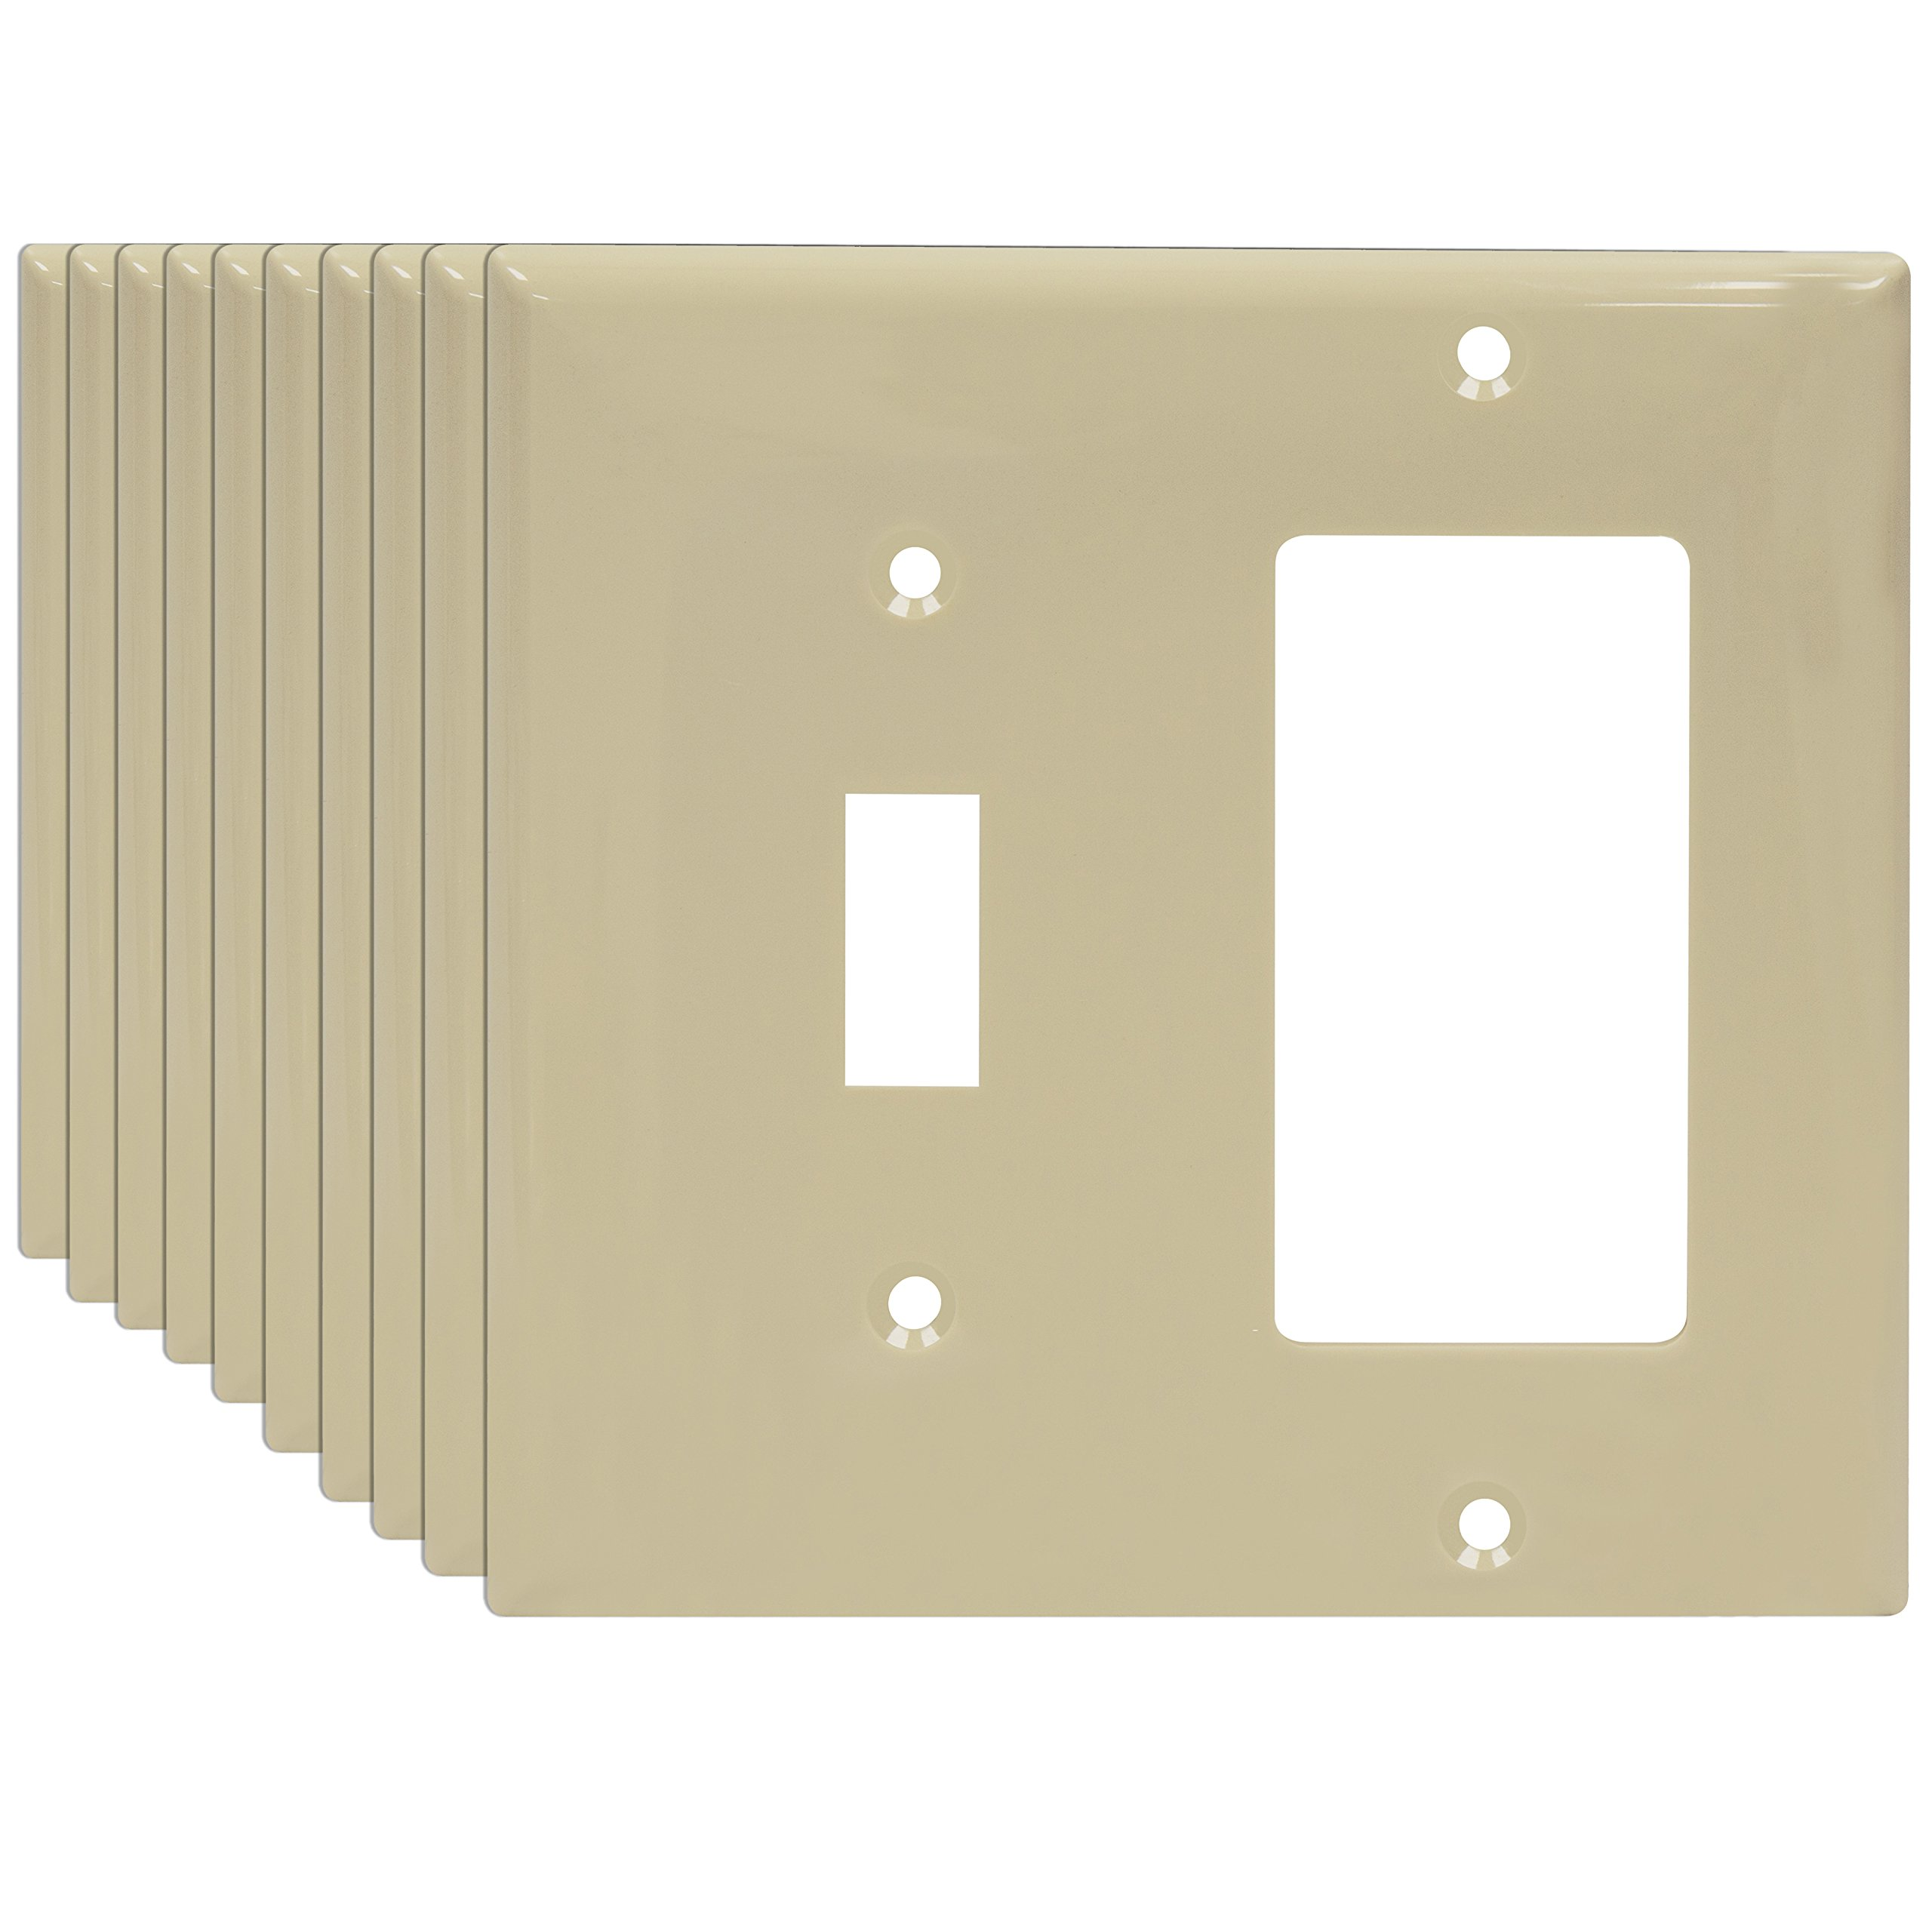 Buy 15 Amp Disposal Decorator Wall Switch 120 Volt Single Pole Ivory Toggle Enerlites 881131 I 10pcs Plate Combination Home Electrical Rocker Outlet Cover 2 Gang Standard Size Pack Of 10